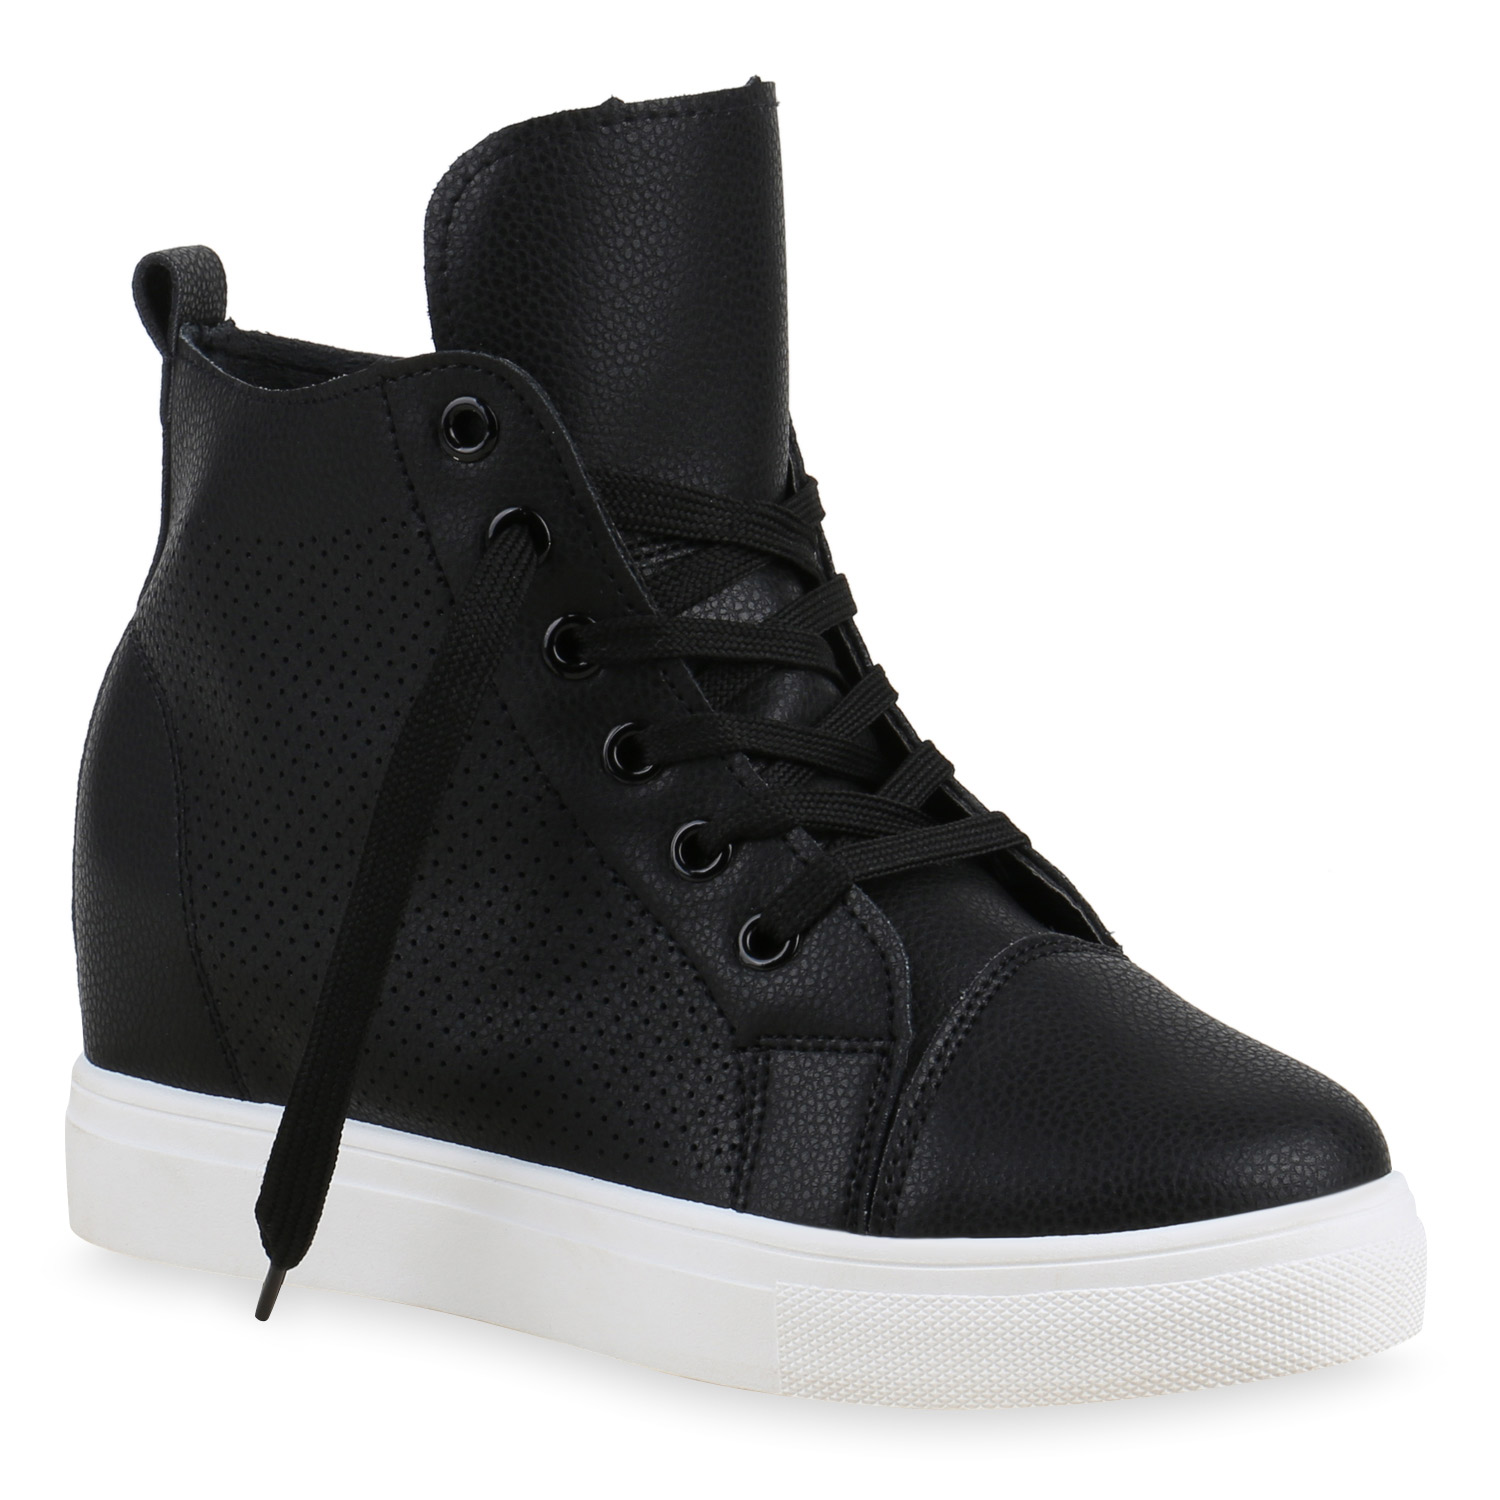 damen high top sneakers sneaker wedges keilabsatz schuhe. Black Bedroom Furniture Sets. Home Design Ideas